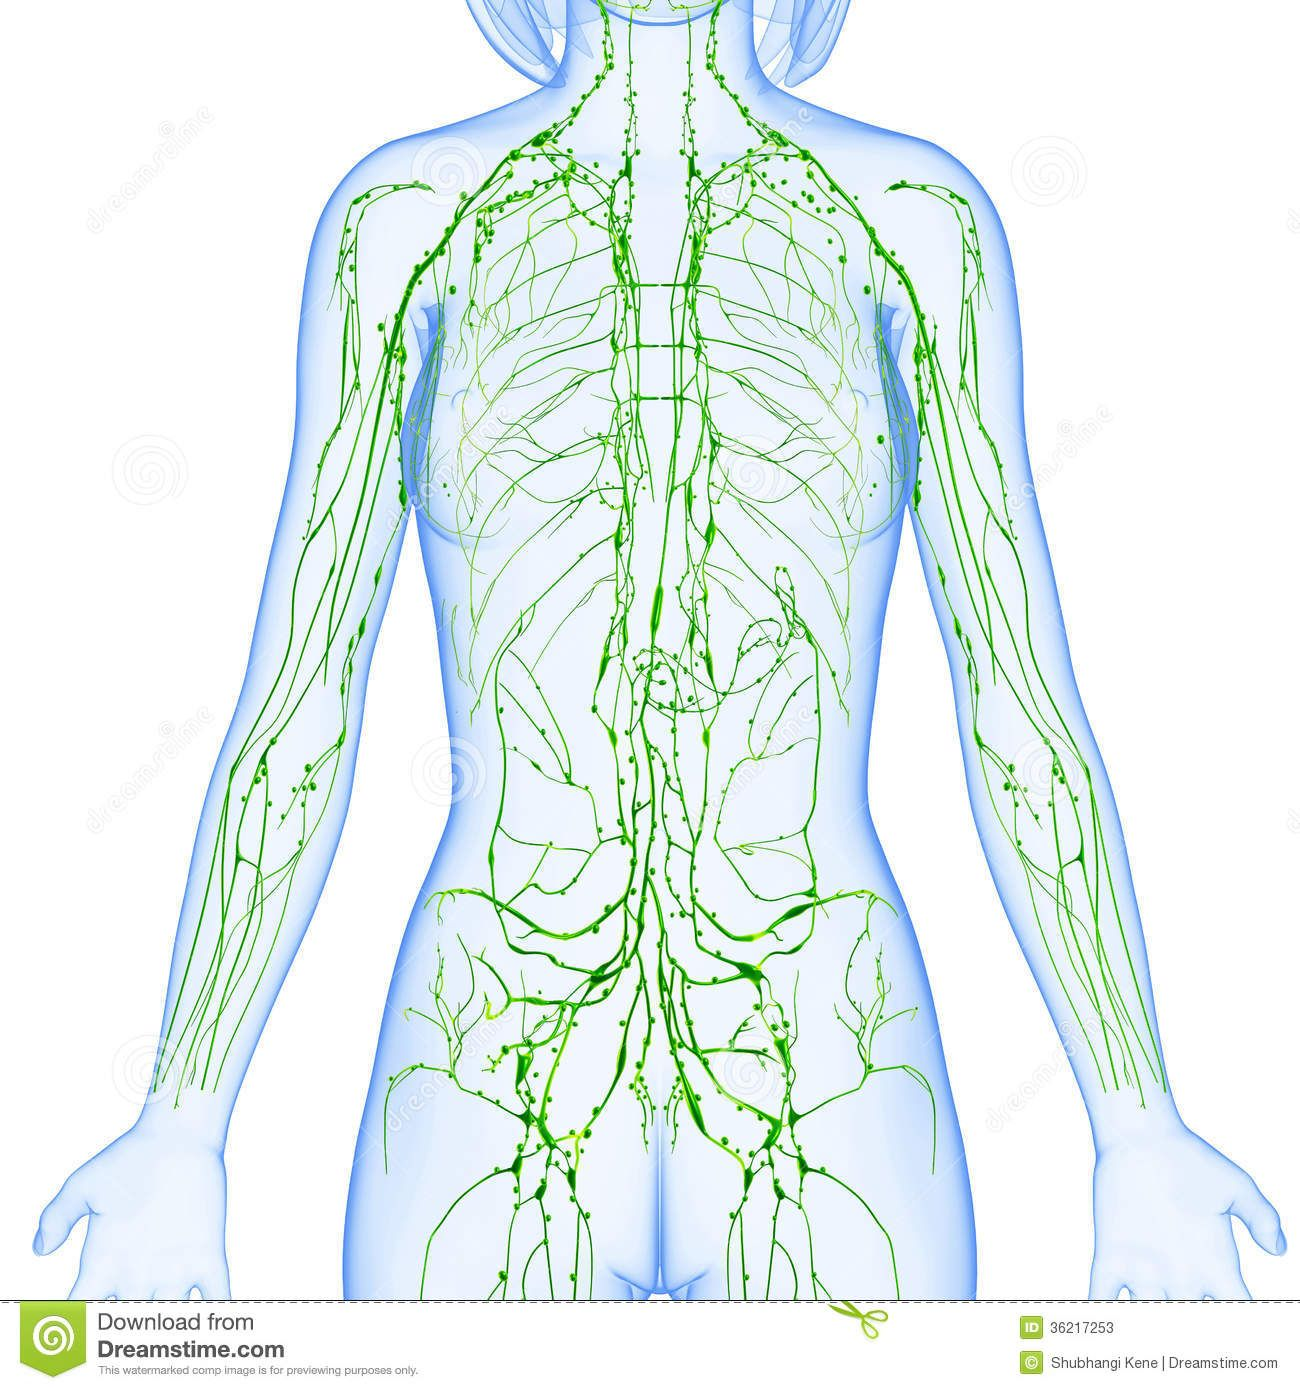 Images Of Lymphatic System